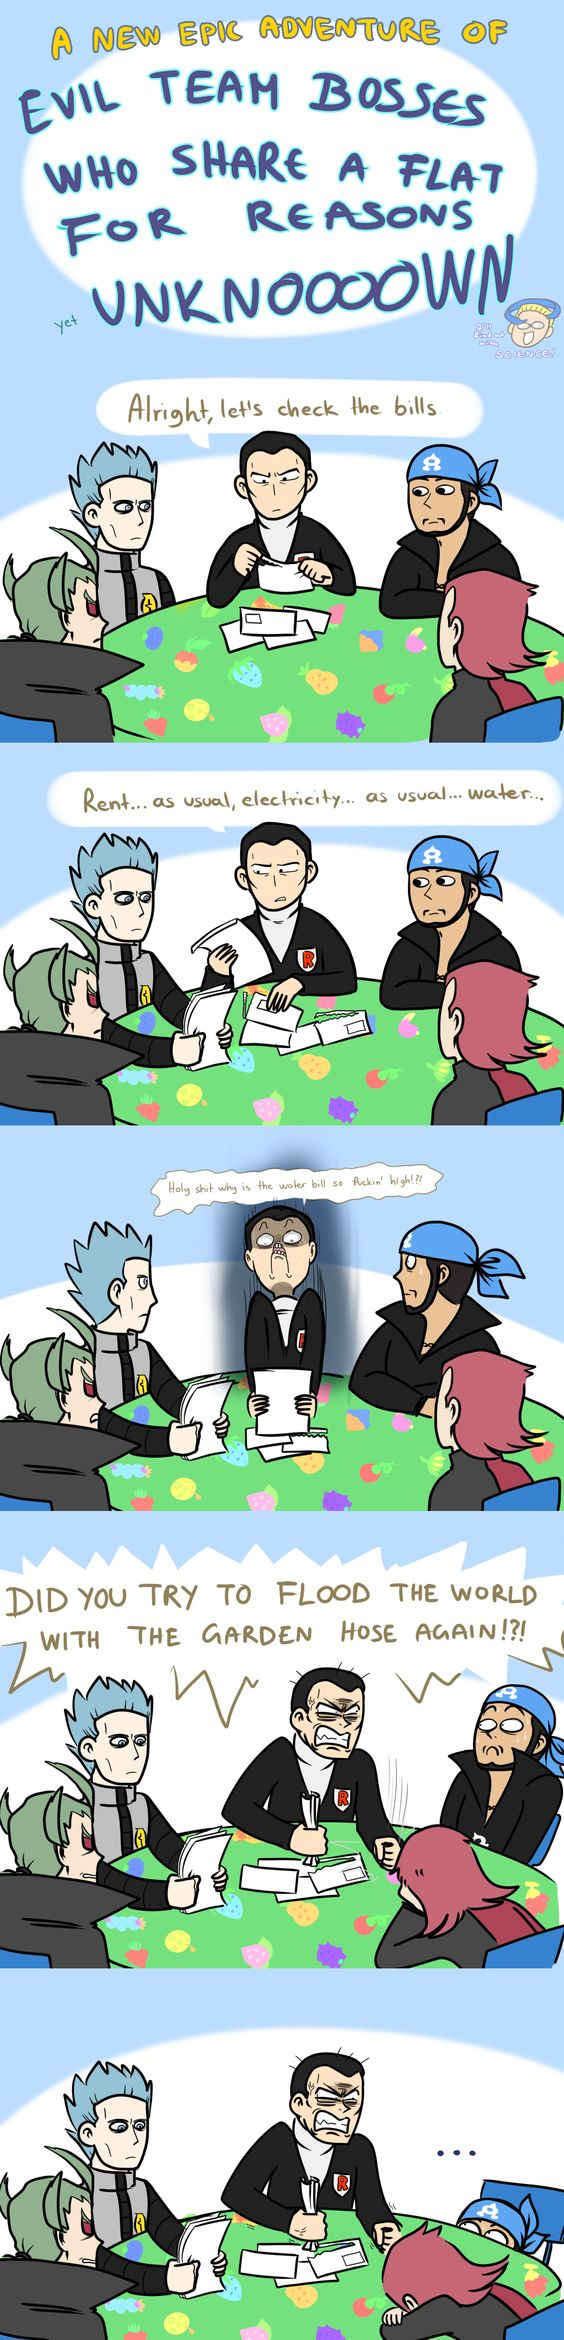 Evil Team Bosses ... pokemon